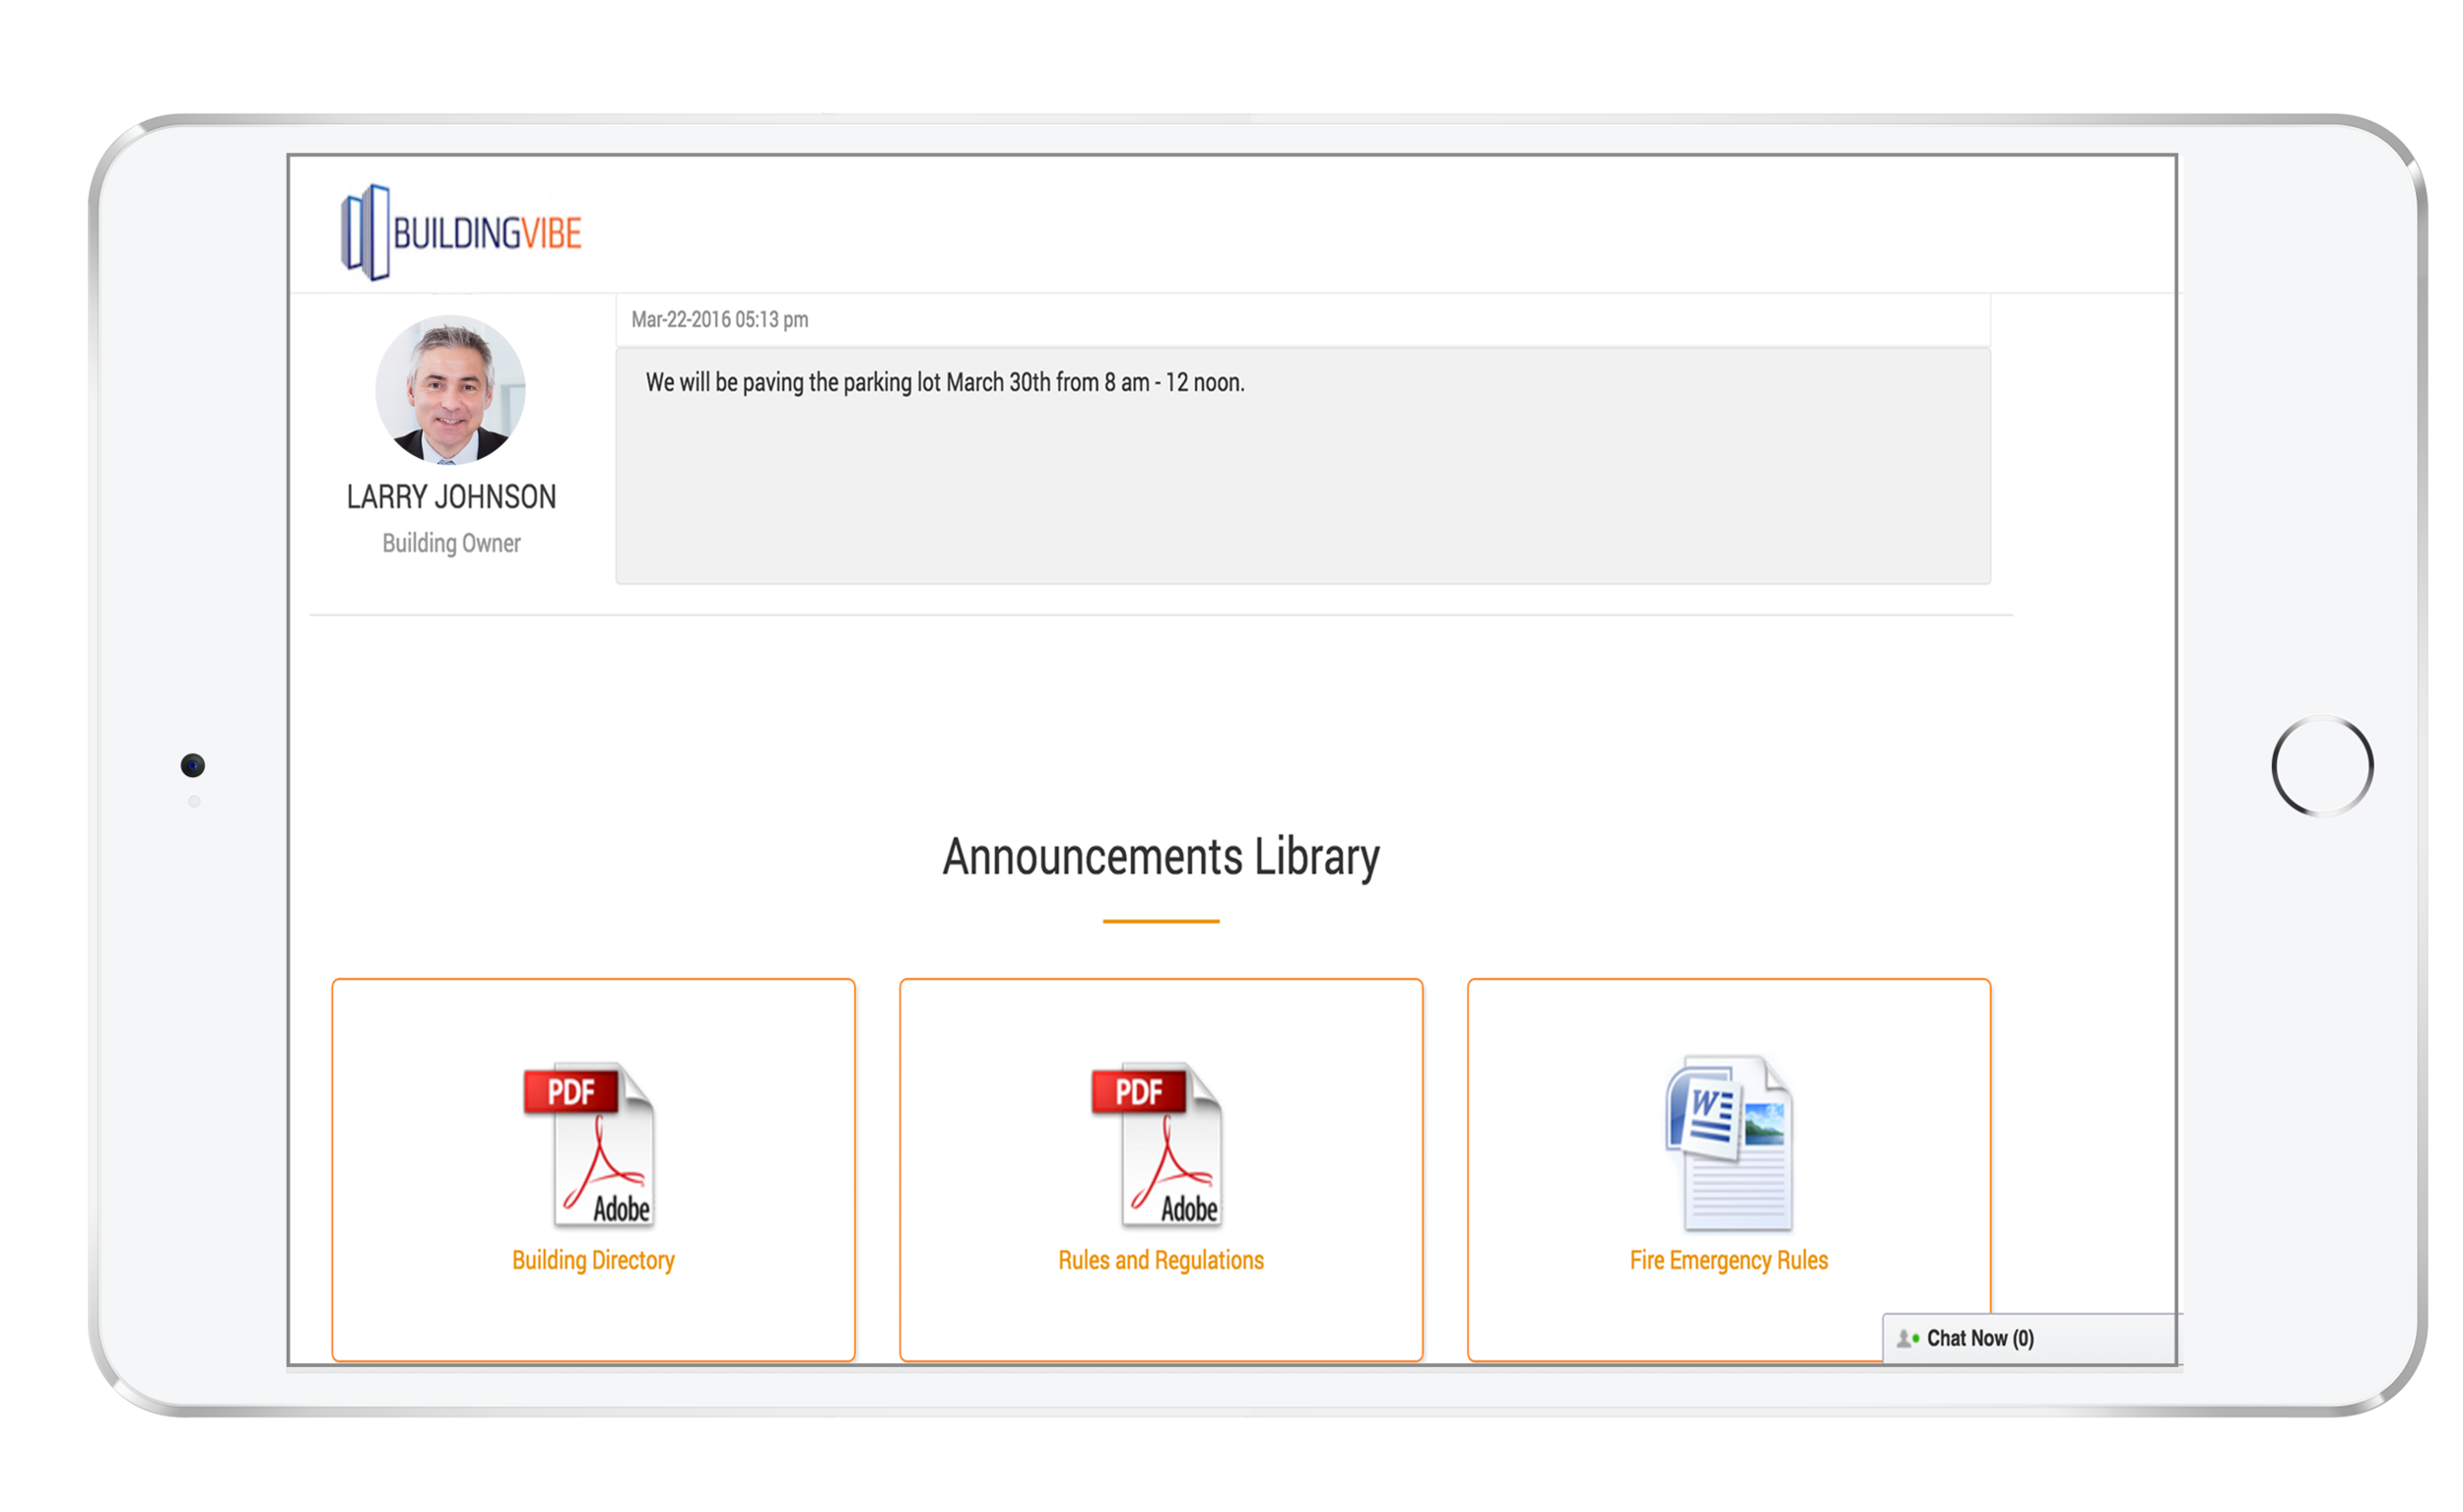 Resource Center - Centralize your building documents, resources and access to applications from your private intranet.Broadcast notifications and alertsShare important documents and fileQuick links to helpful resourcesStaff and tenant directories